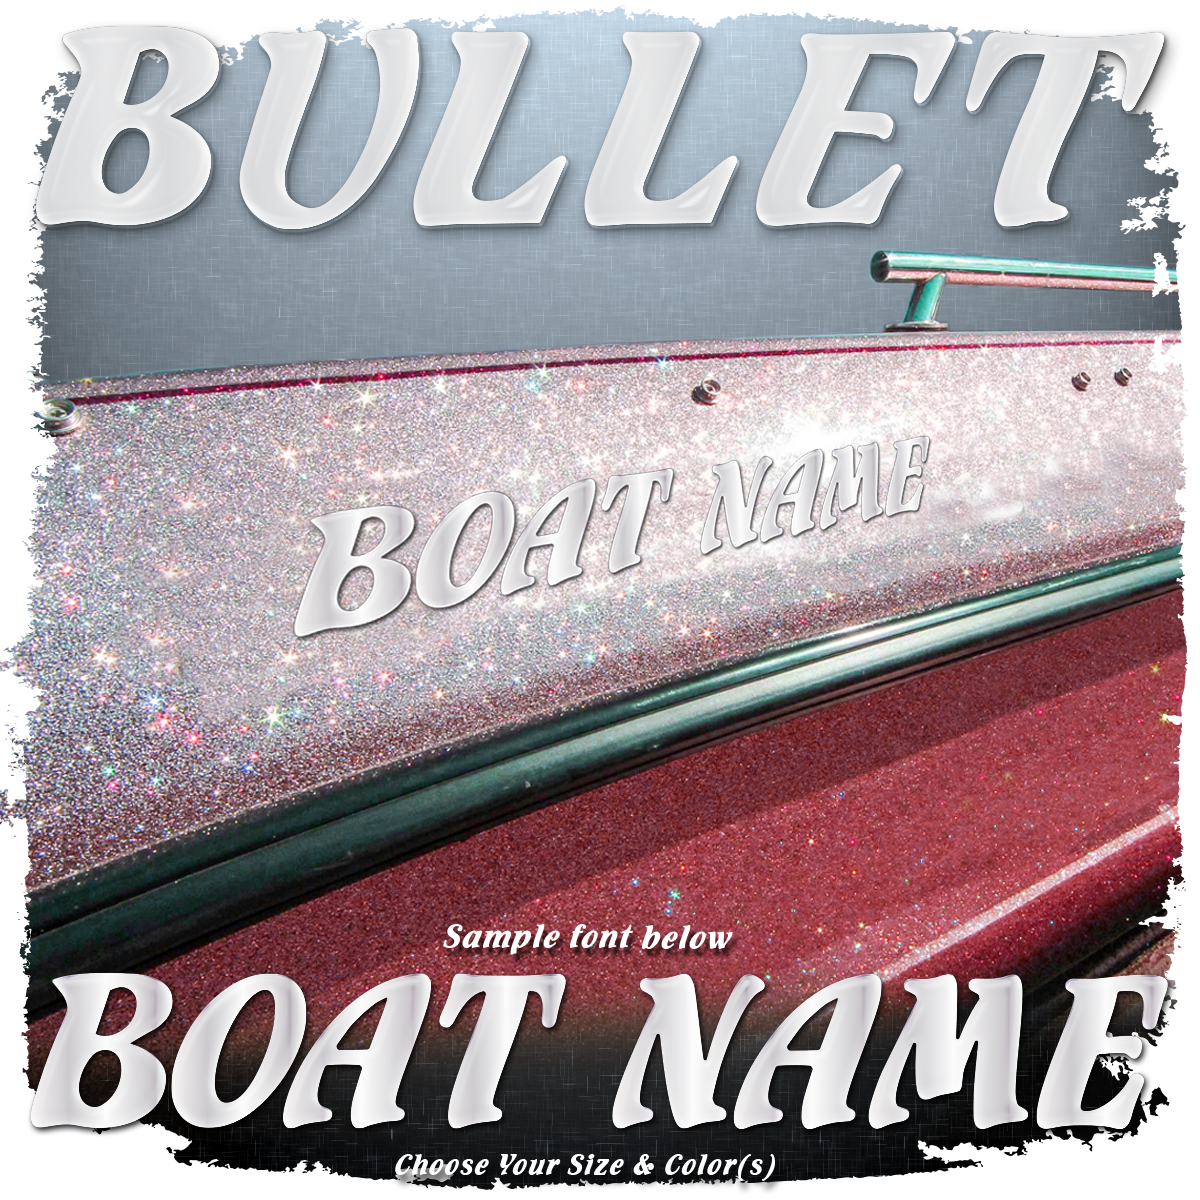 Domed Boat Name in the Bullet Font, Choose Your Own Colors